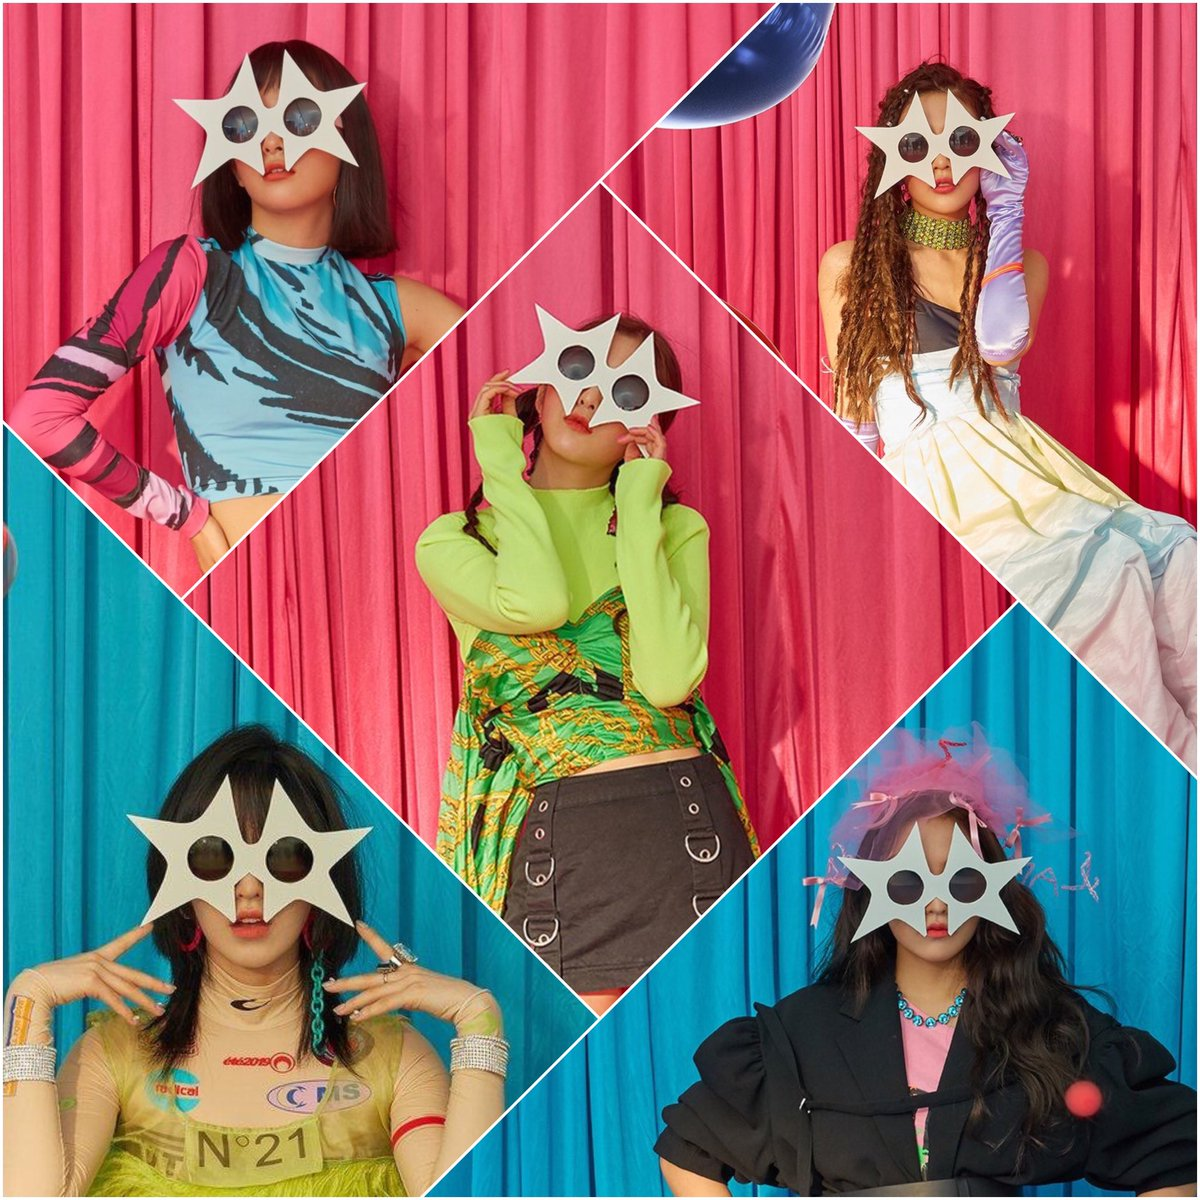 They're finally complete!!! ZIMZALABIM IS COMING!!!!   #TheReveFestivalD4 #RedVelvet @RVsmtown<br>http://pic.twitter.com/eHP0ITqesL